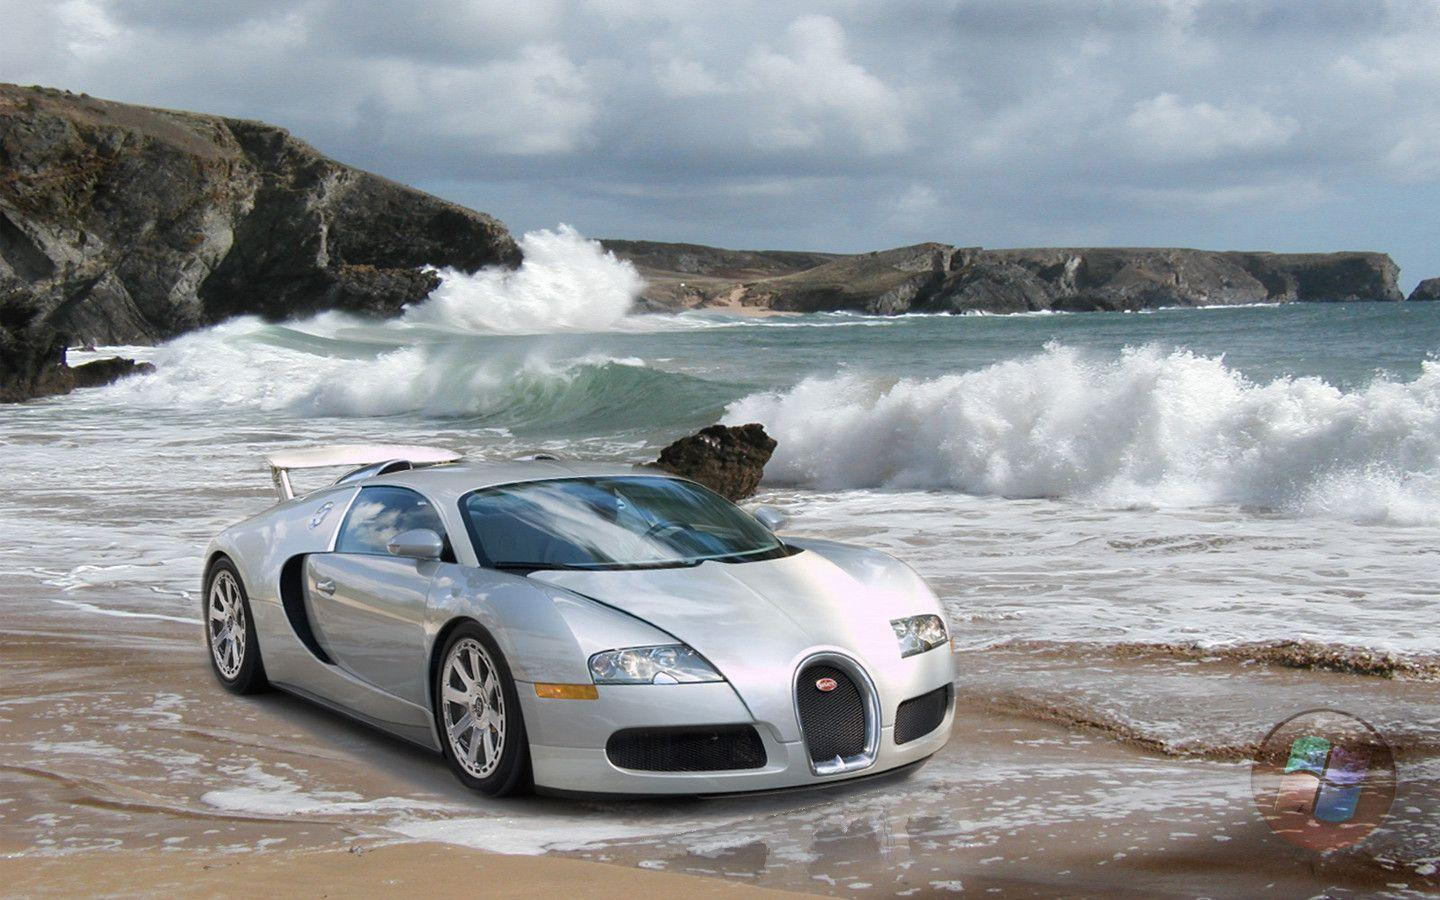 Bugatti Cars Wallpapers 1080p Bugatti Iphone Wallpaper Hd: Bugatti Wallpapers